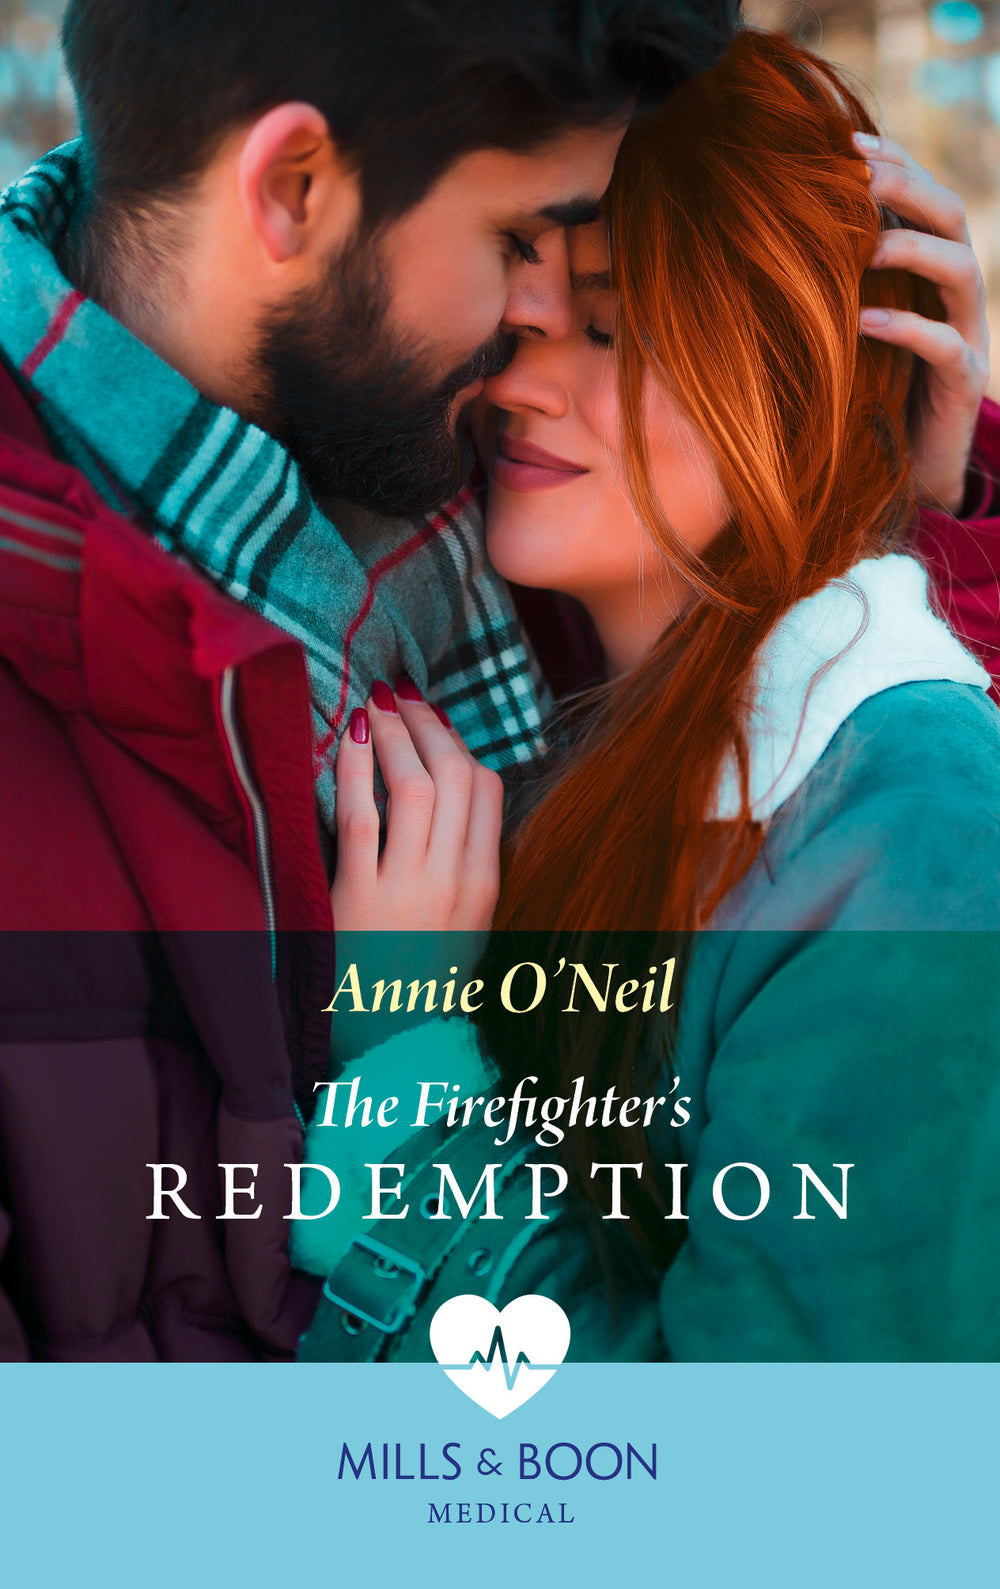 The Firefighter's Redemption - Chapter 10